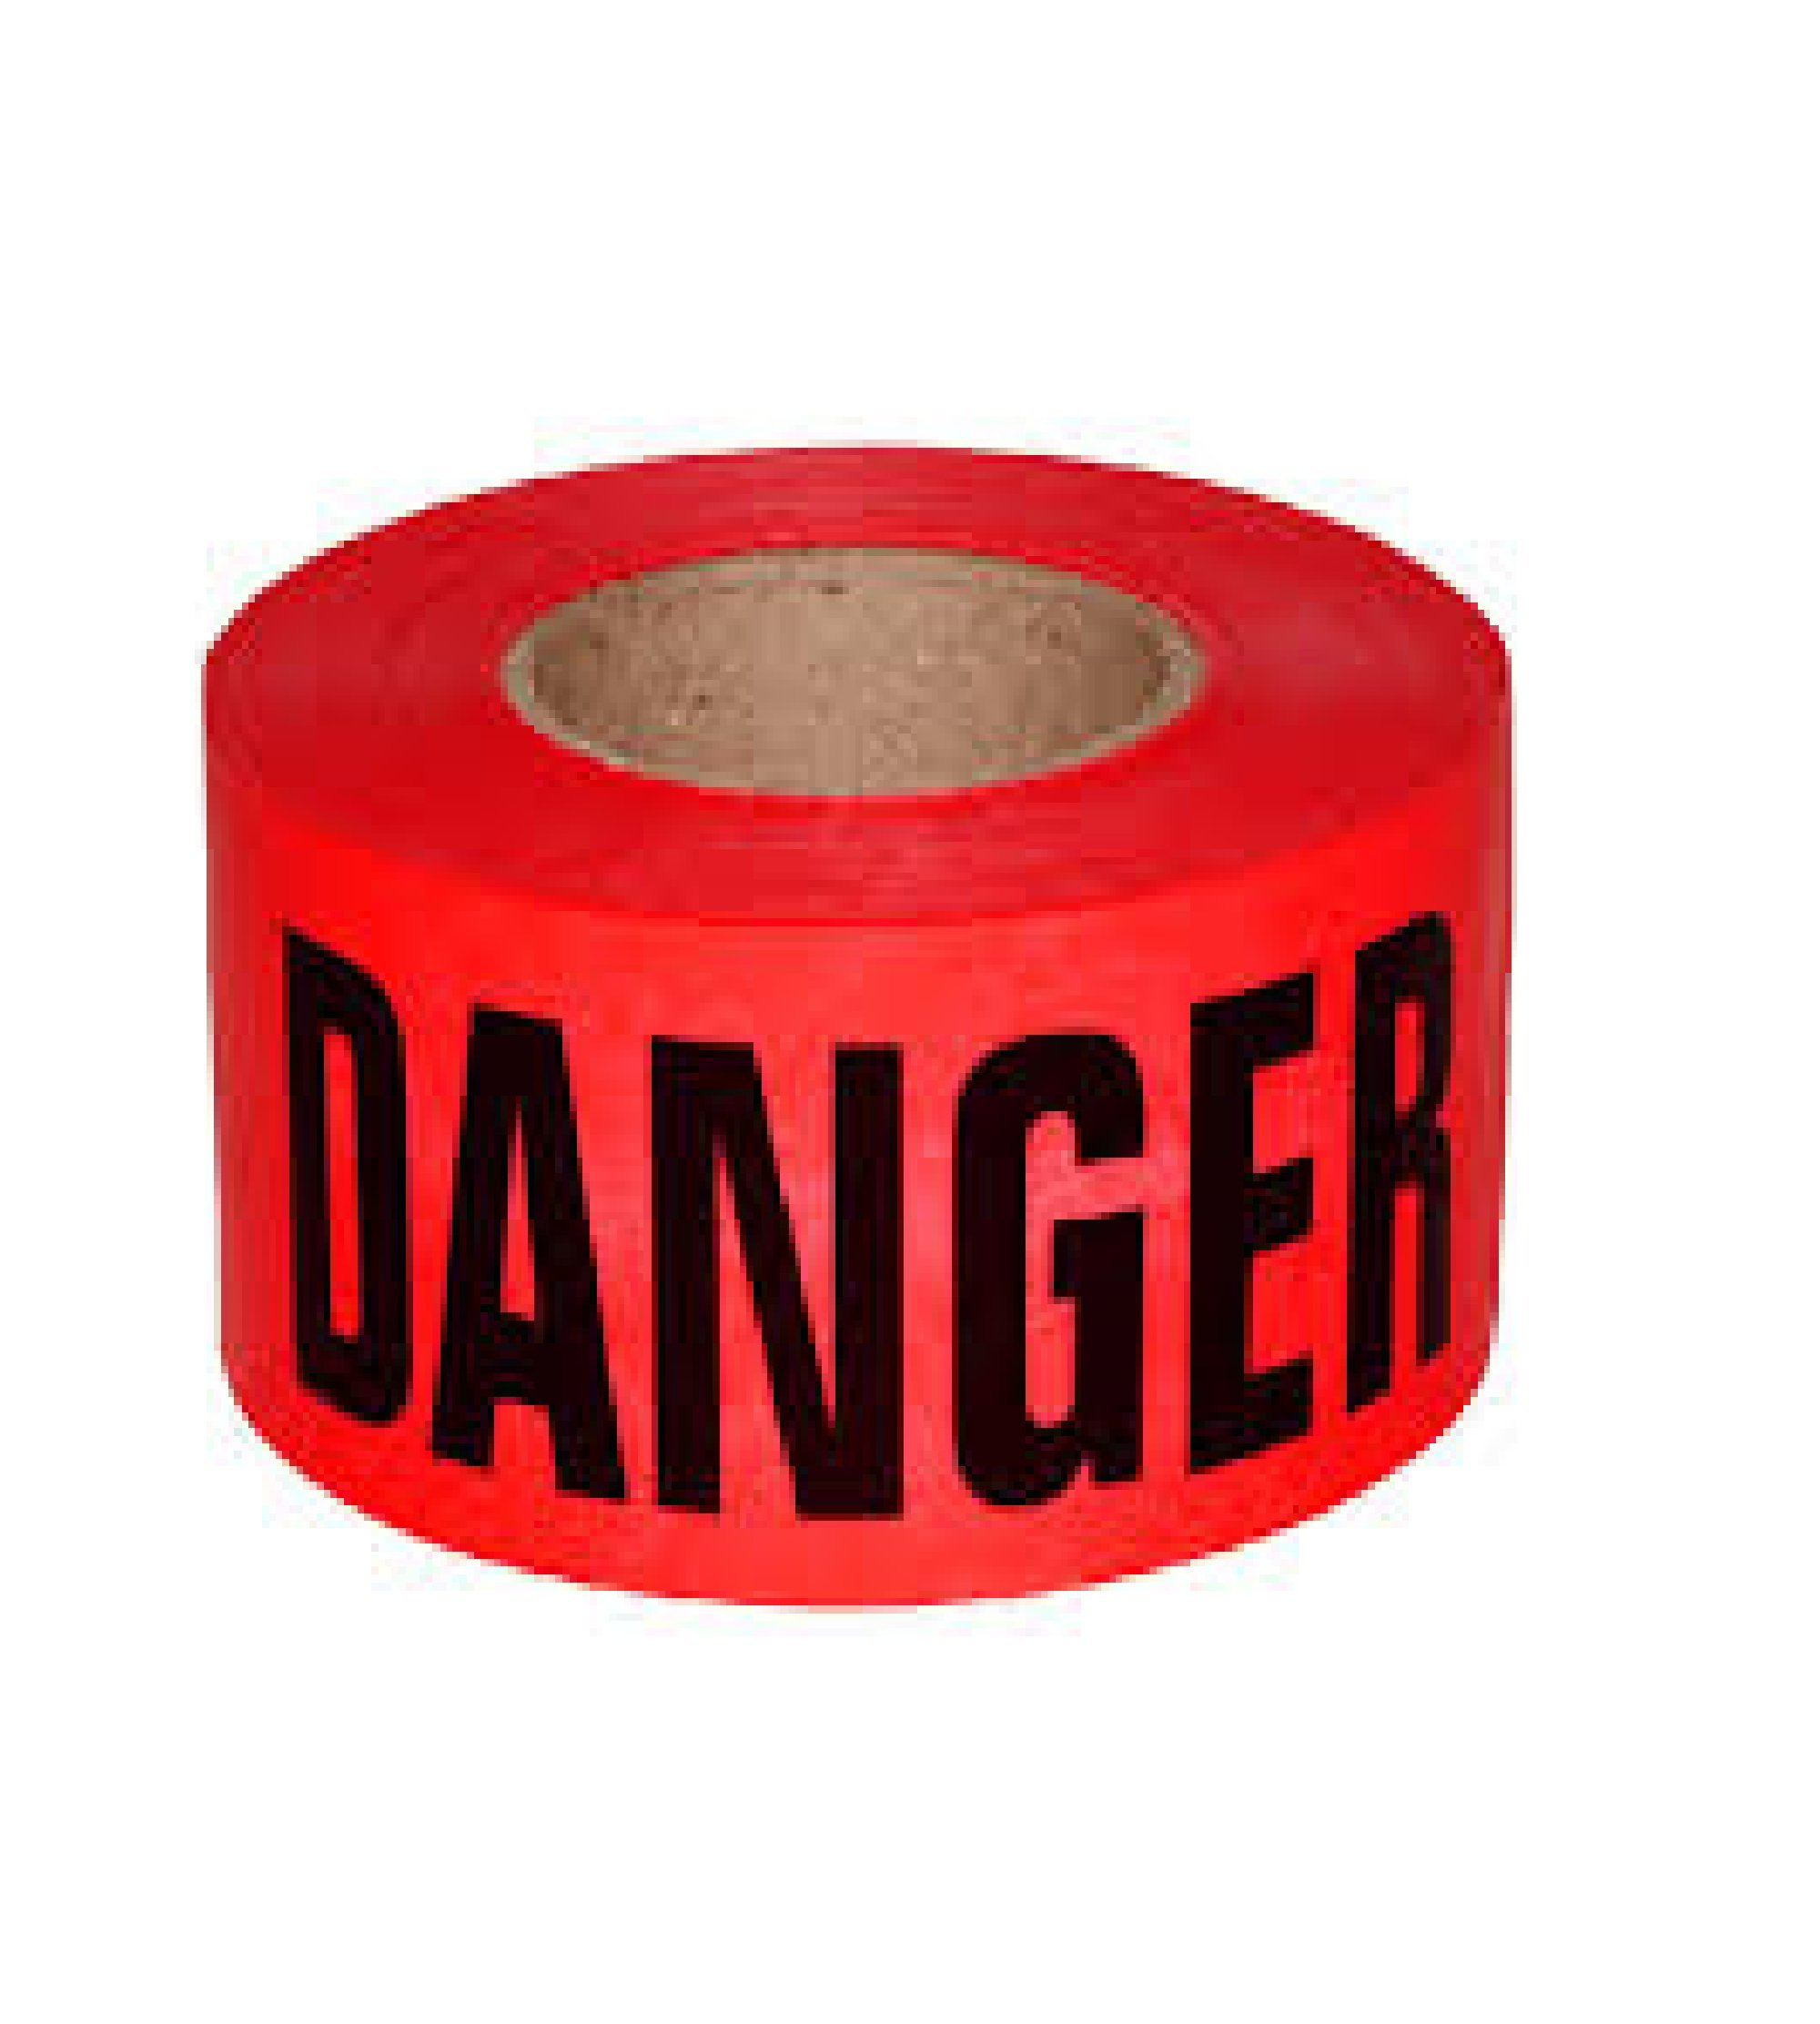 C&W Red Danger Barricade Ribbon Tape - 3'' X 1000 ft • Bright Red with a Bold Black Print for High Visibility • 3'' wide for Maximum Readability • Tear Resist Design • Danger Tape.